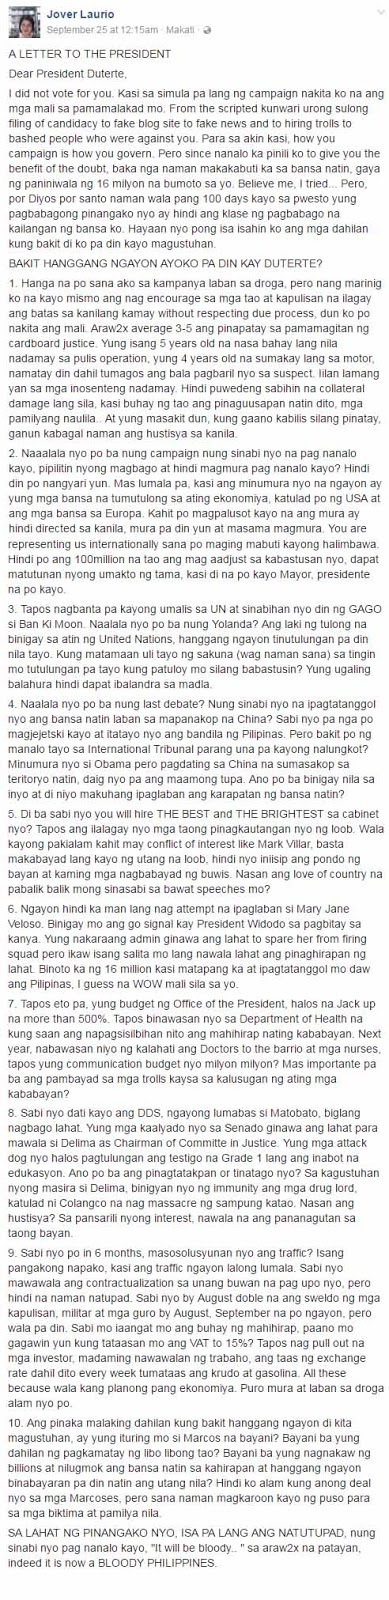 Outraged Pinay Netizen Goes on Rant, Lists Reasons Why She Hates President Duterte!